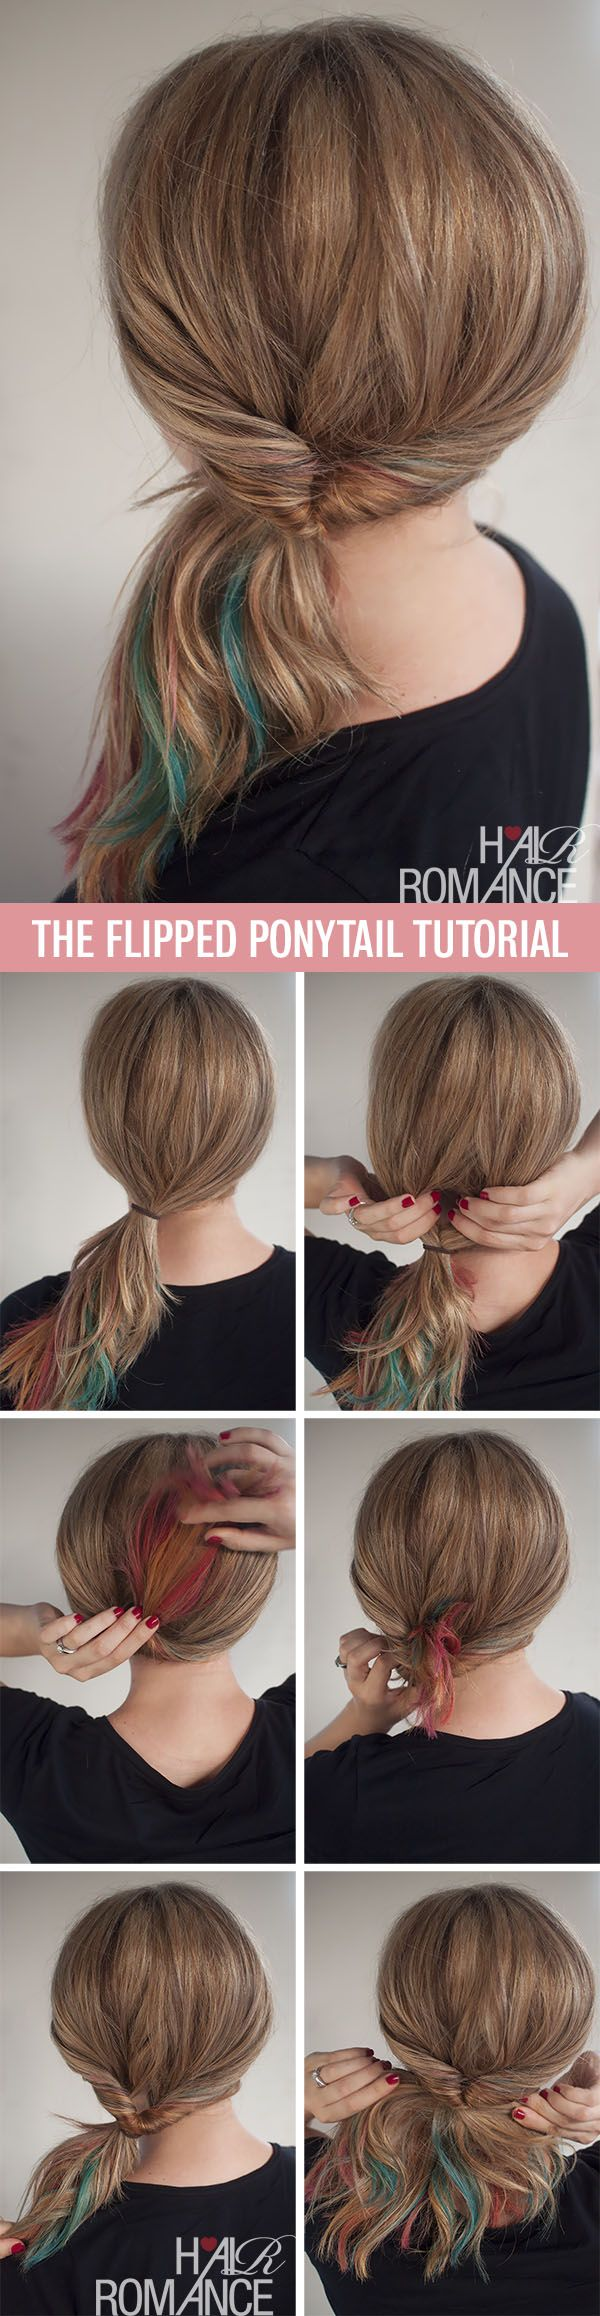 Get cute hair in less than 1 minute – the flipped ponytail hairstyle tutorial